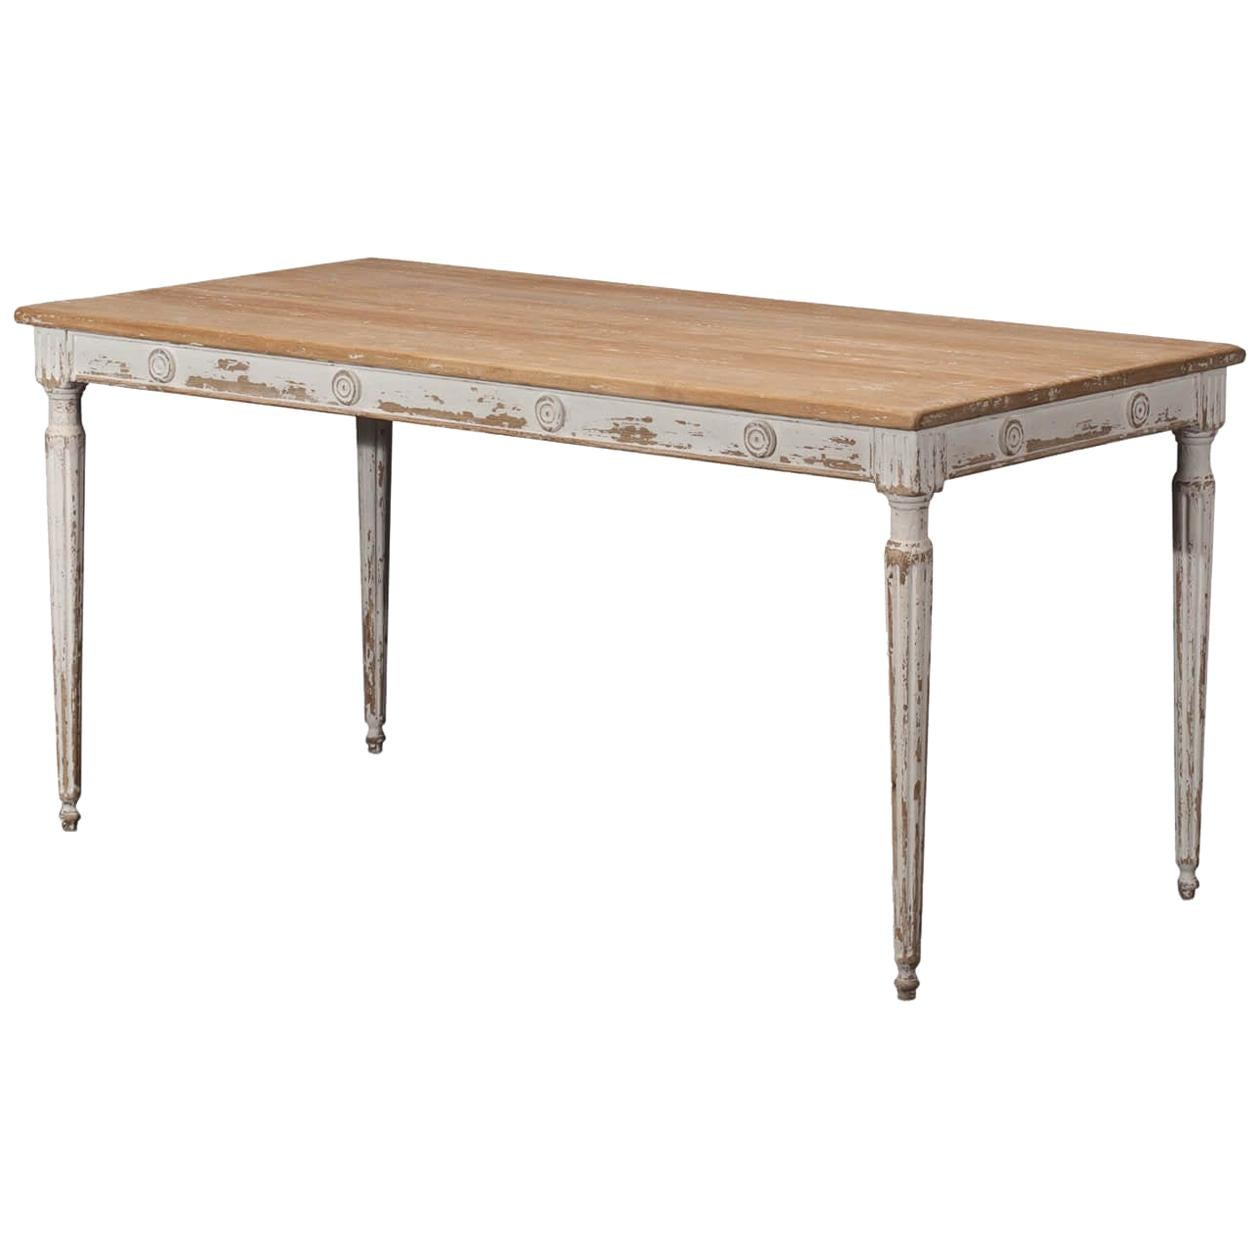 French Country Rustic Dining Table